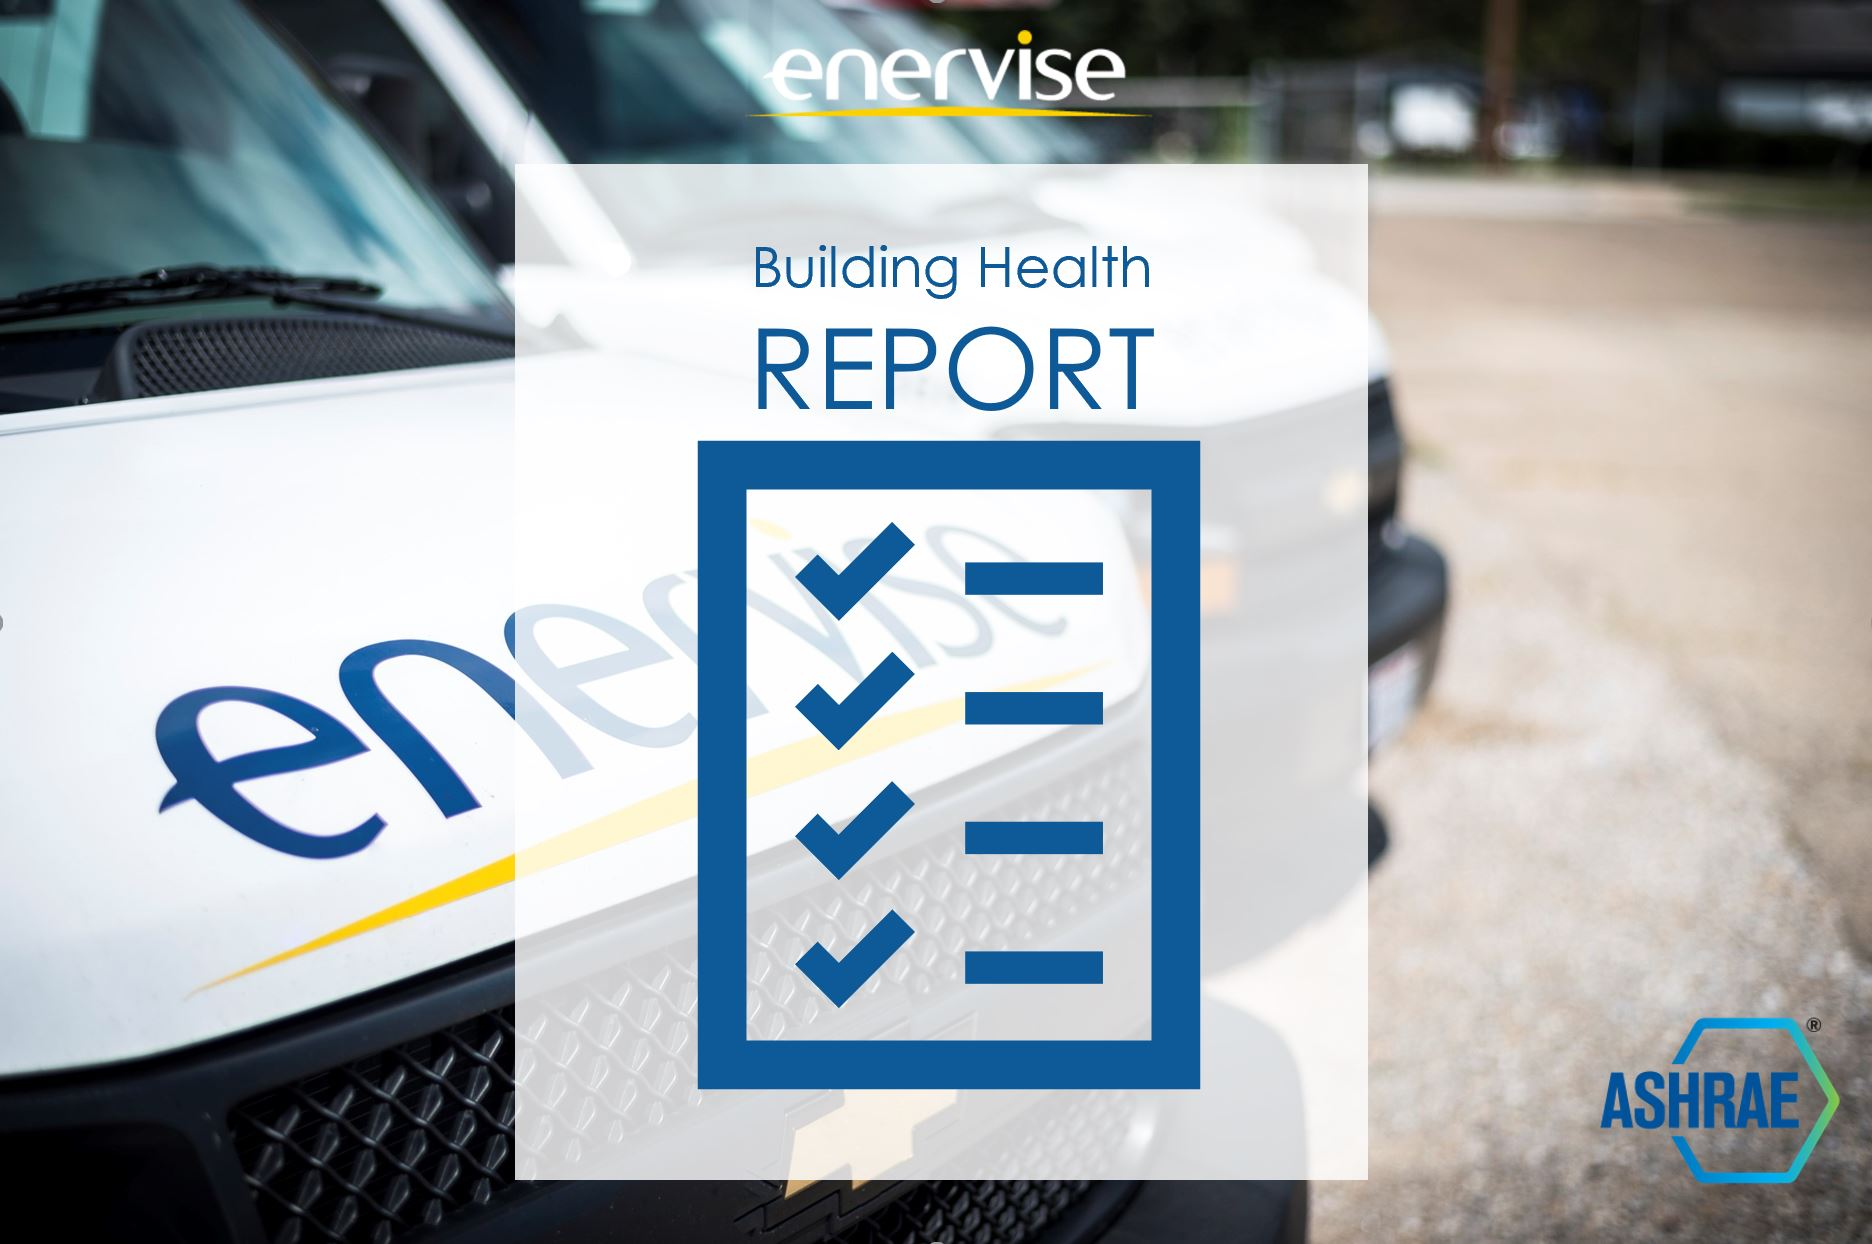 Return with Confidence: Enervise Building Health Report